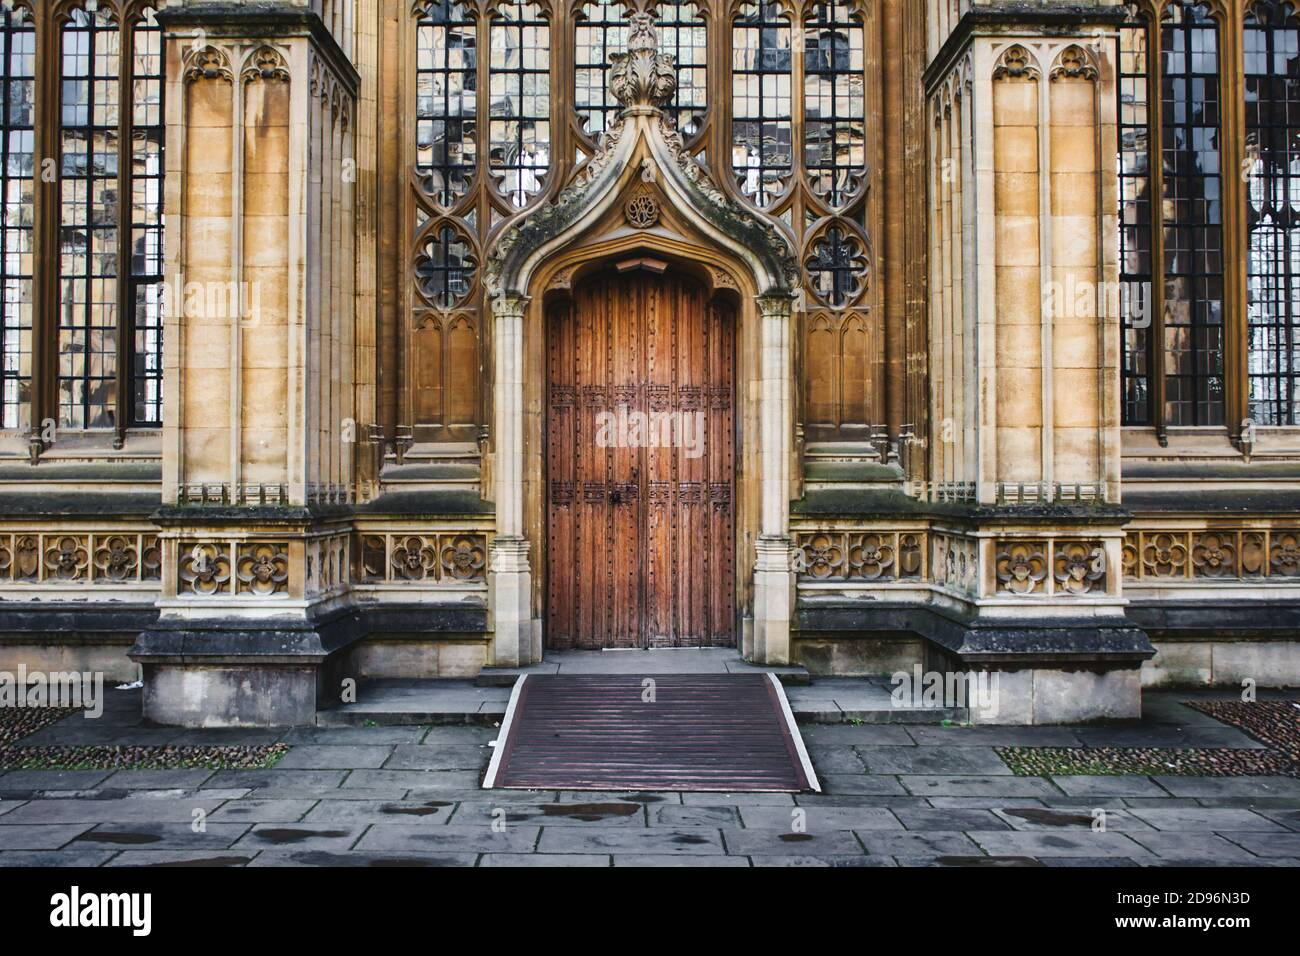 Oxford, UK - March 02 2020: Exterior of the Divinity School in Oxford showing a big wooden door entrance and columns and stained glass windows Stock Photo